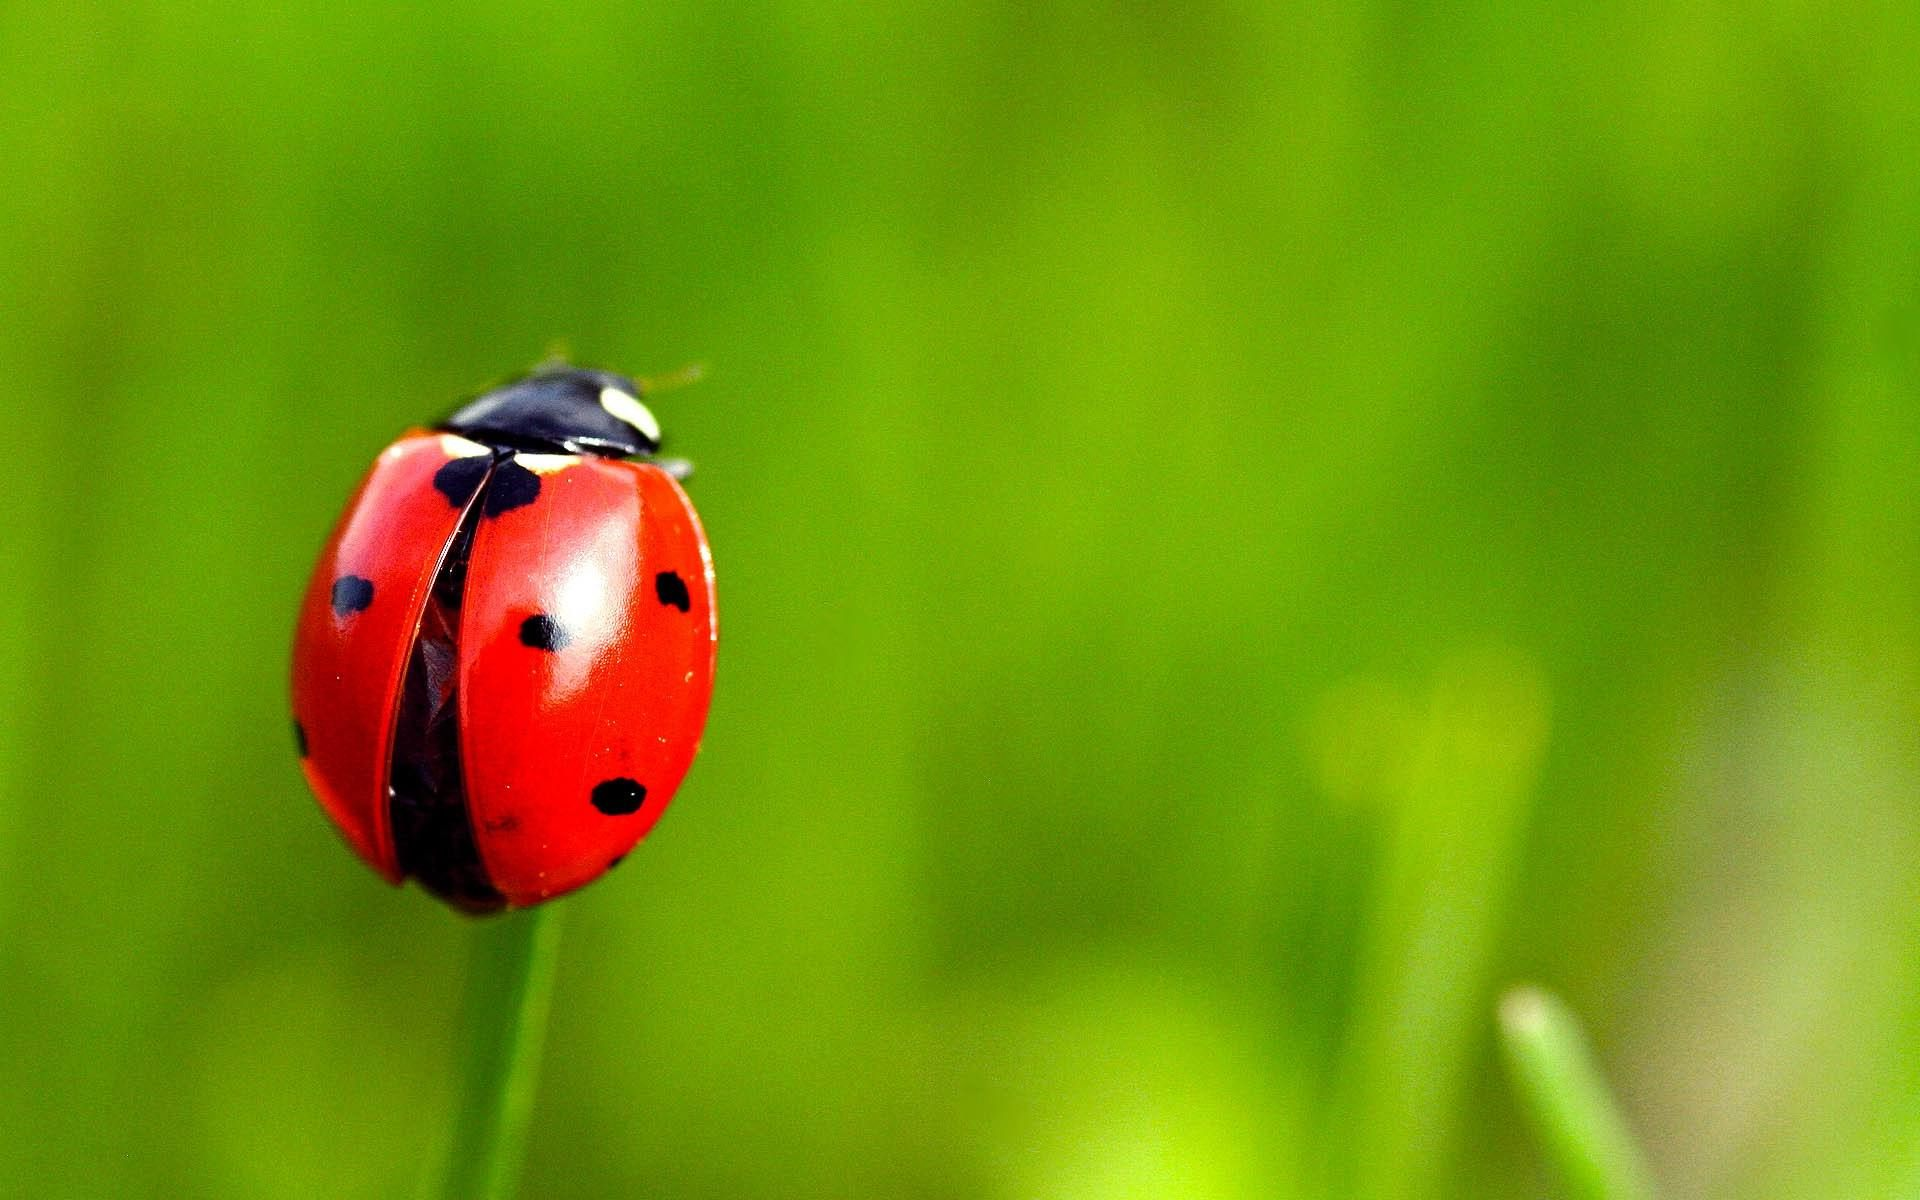 Grass Insect Ladybug Backgrounds for Desktop 23179 High Resolution